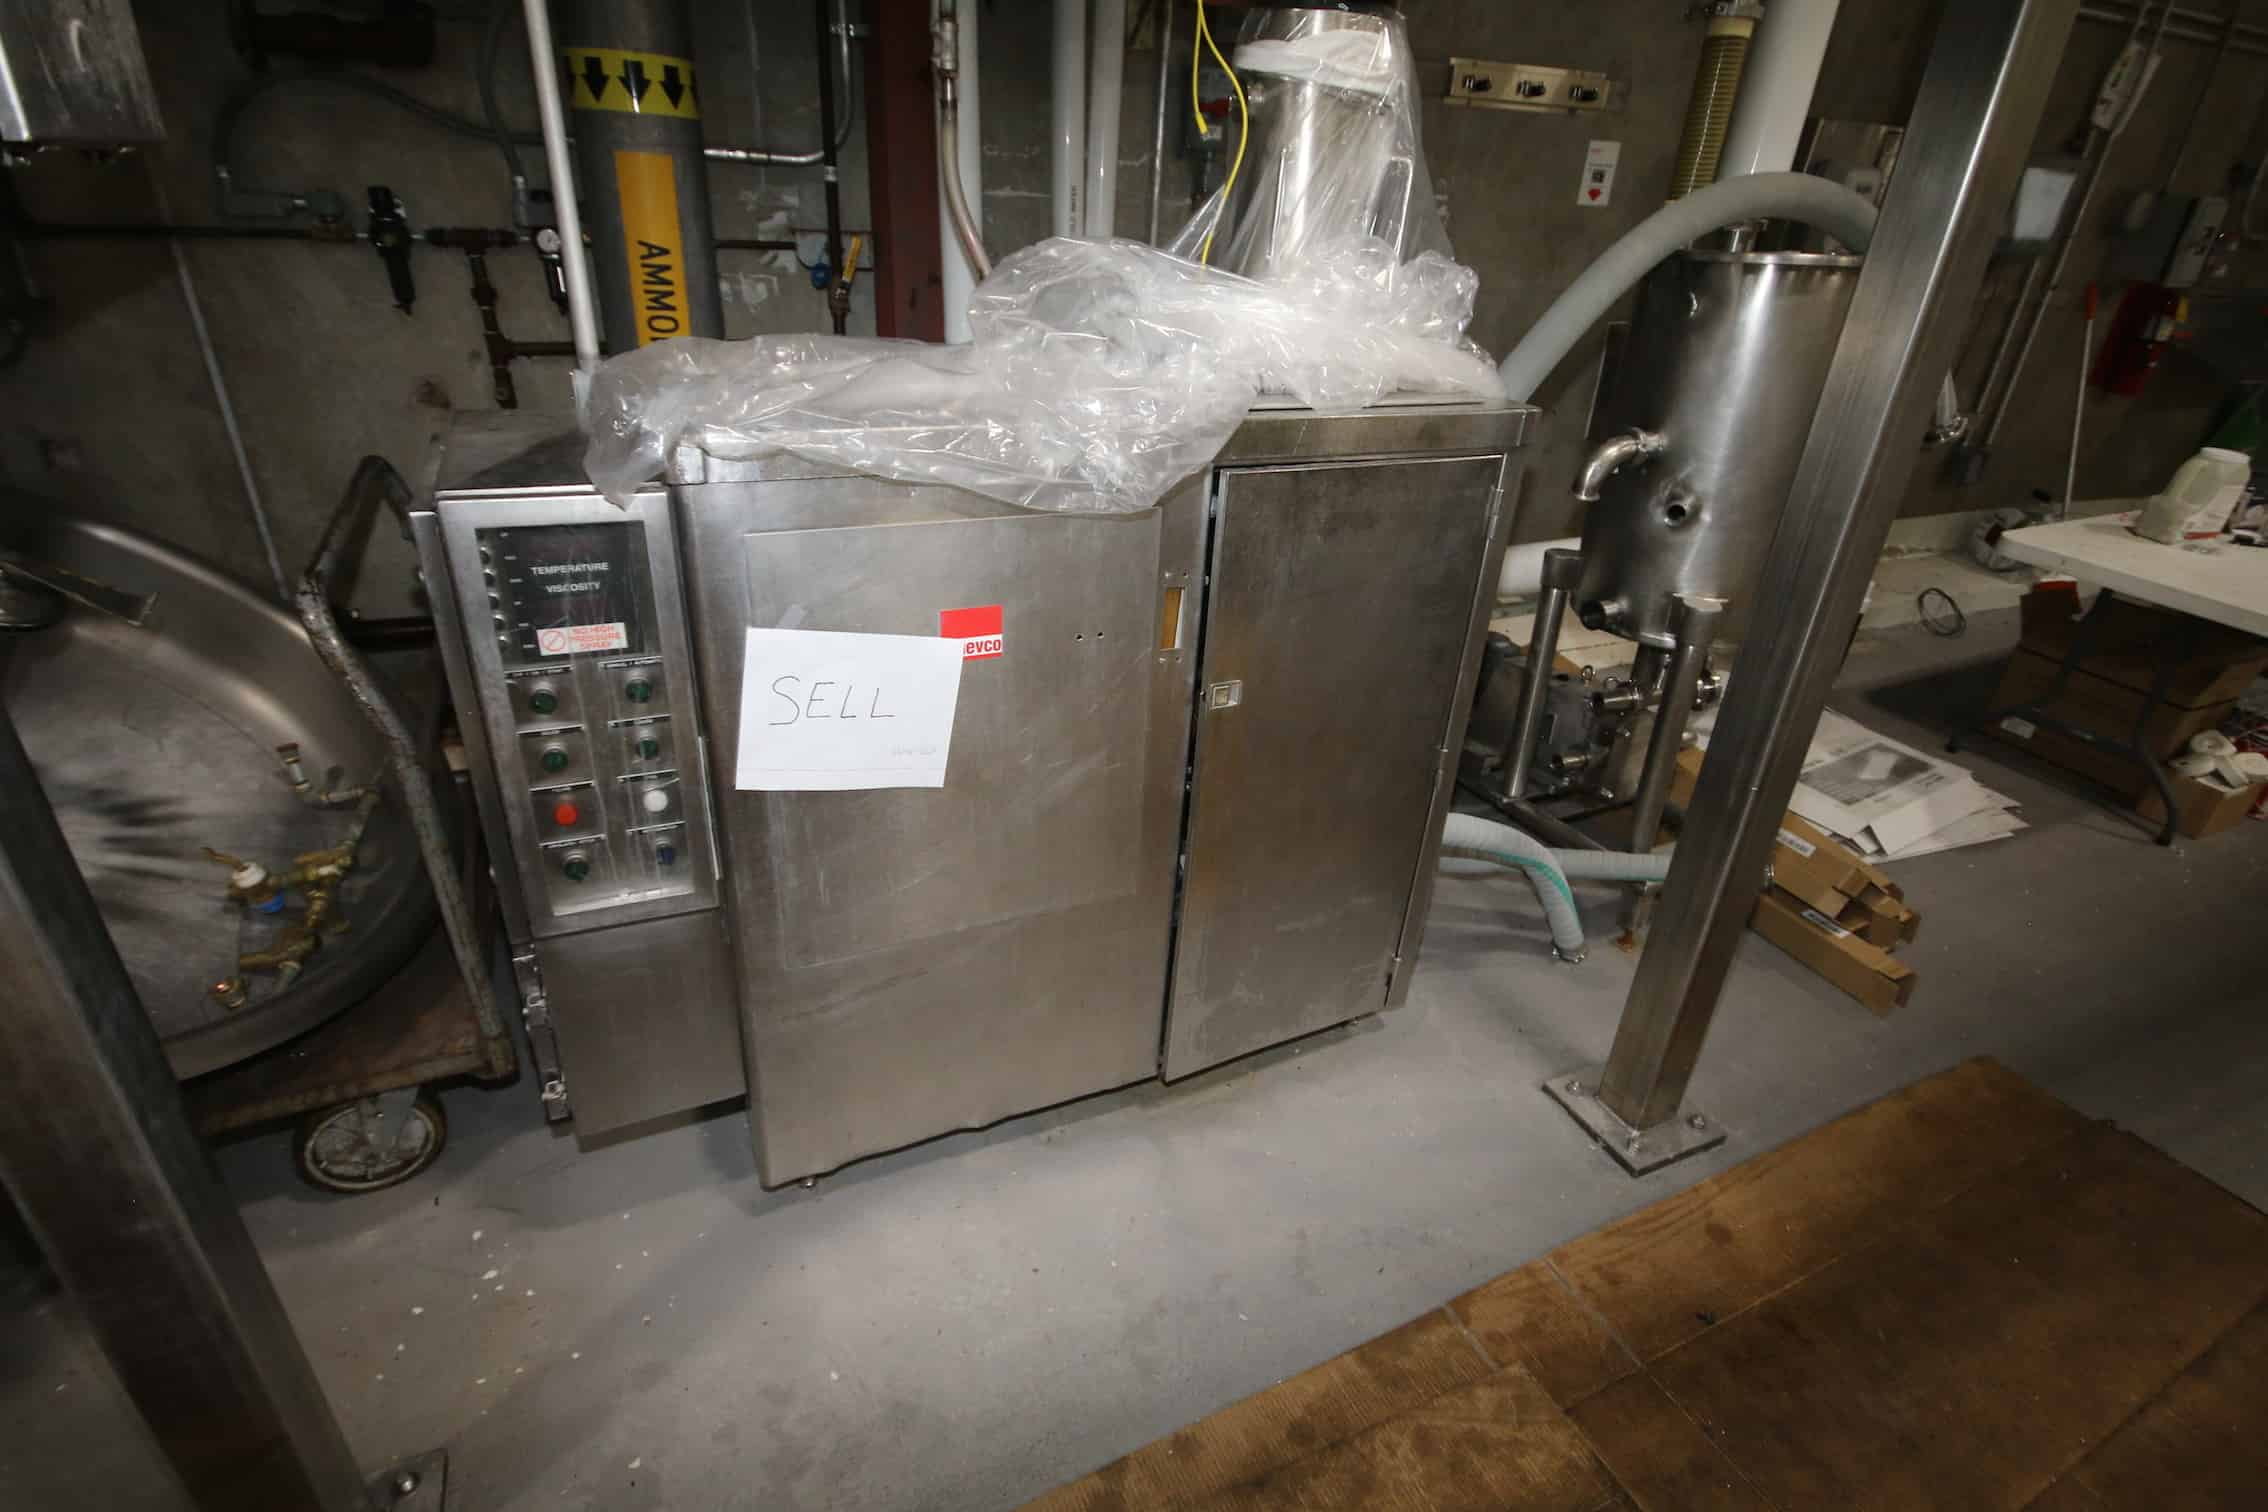 Wilevco S/S Batter Mixer, Series V-70, S/N 57516, 480 Volts, 3 Phase